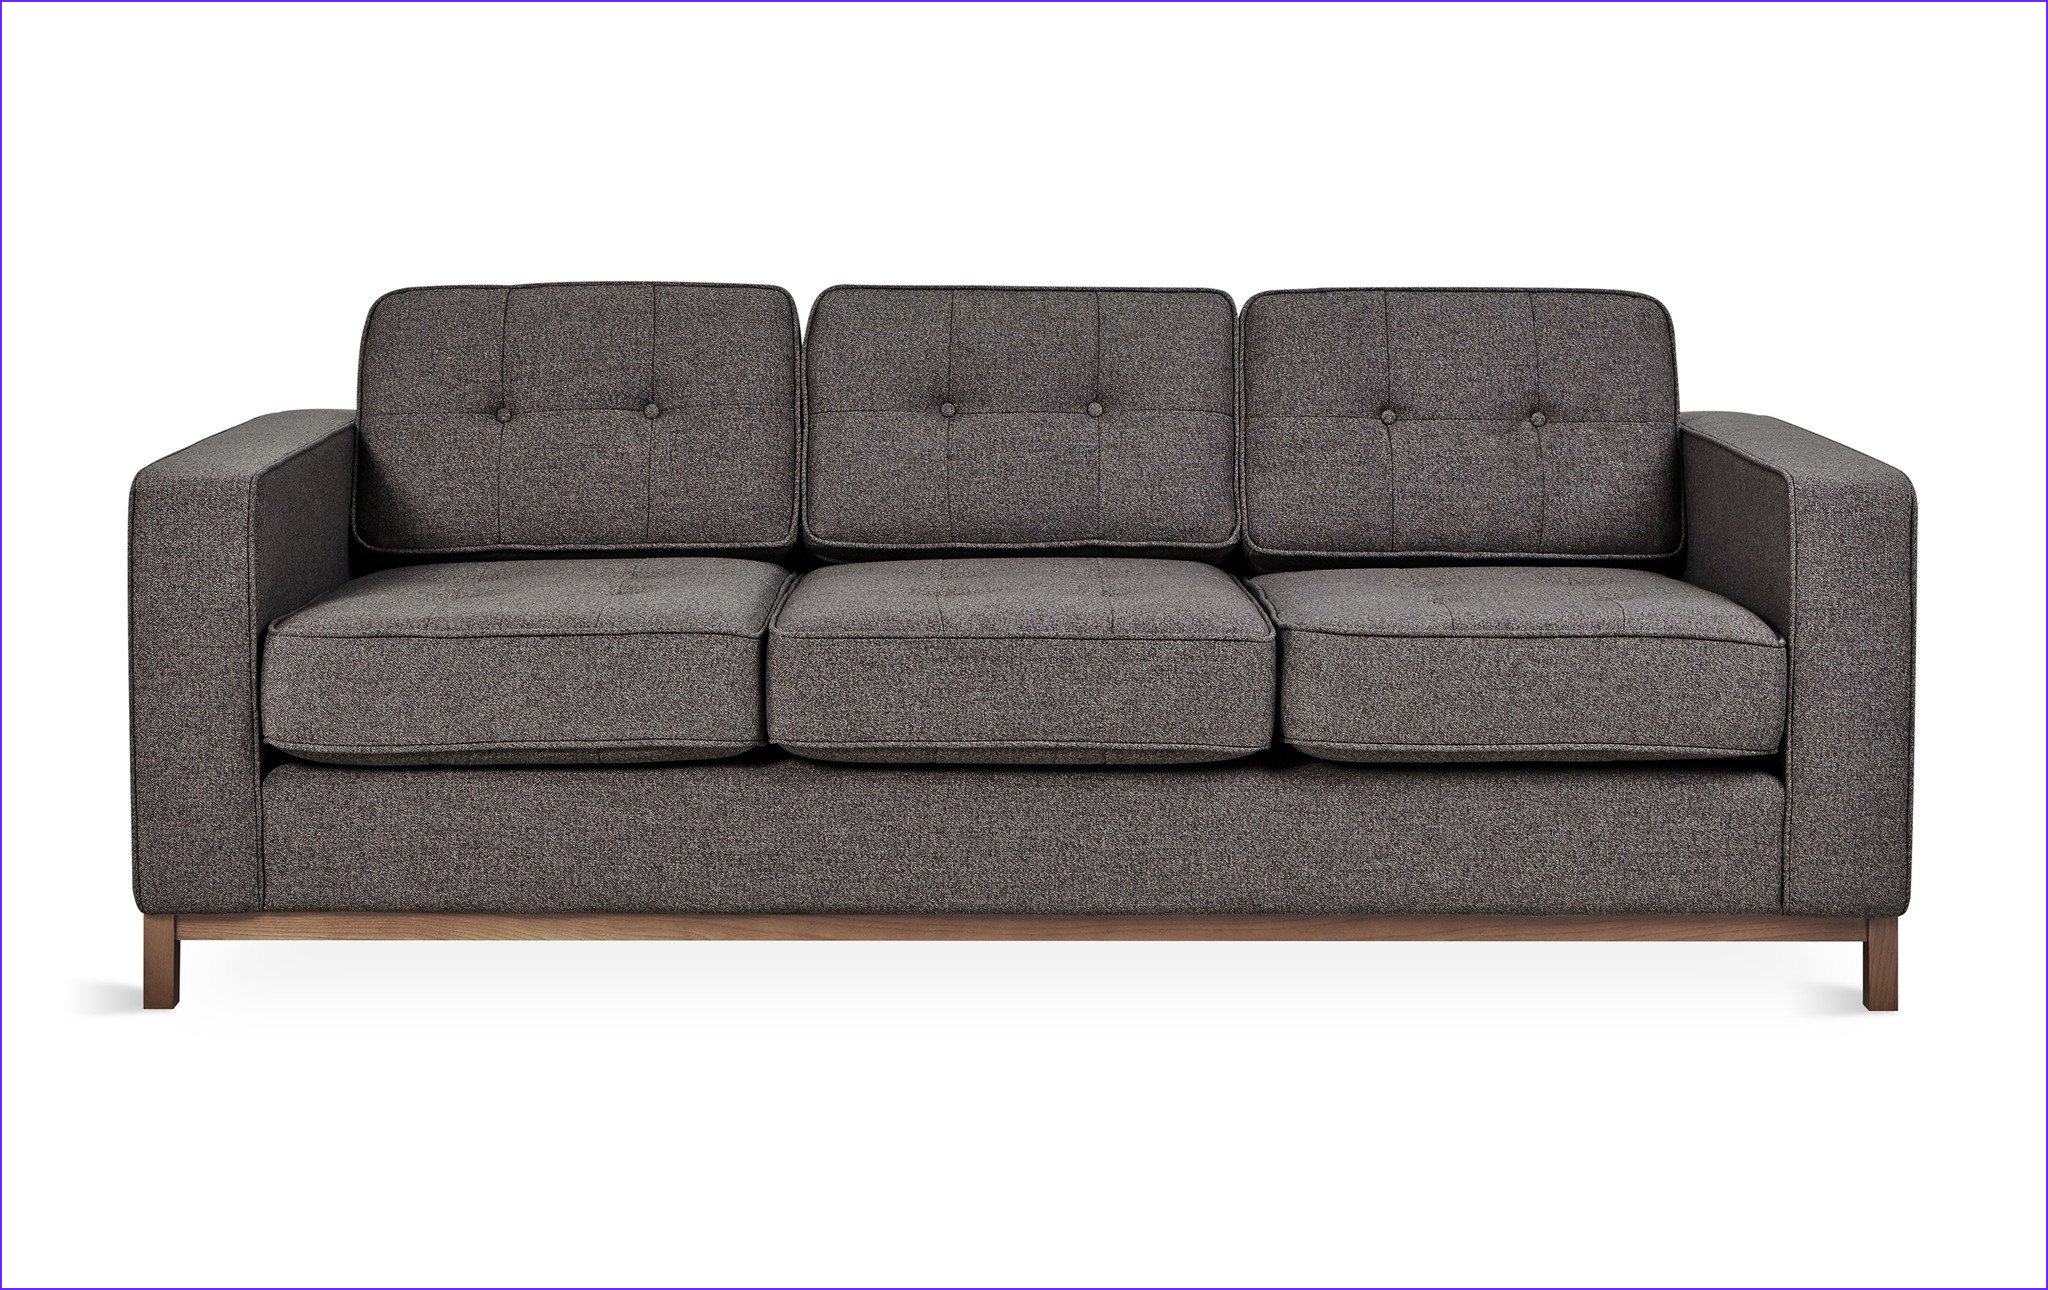 jane sofa in assorted colors w walnut base design by gus modern